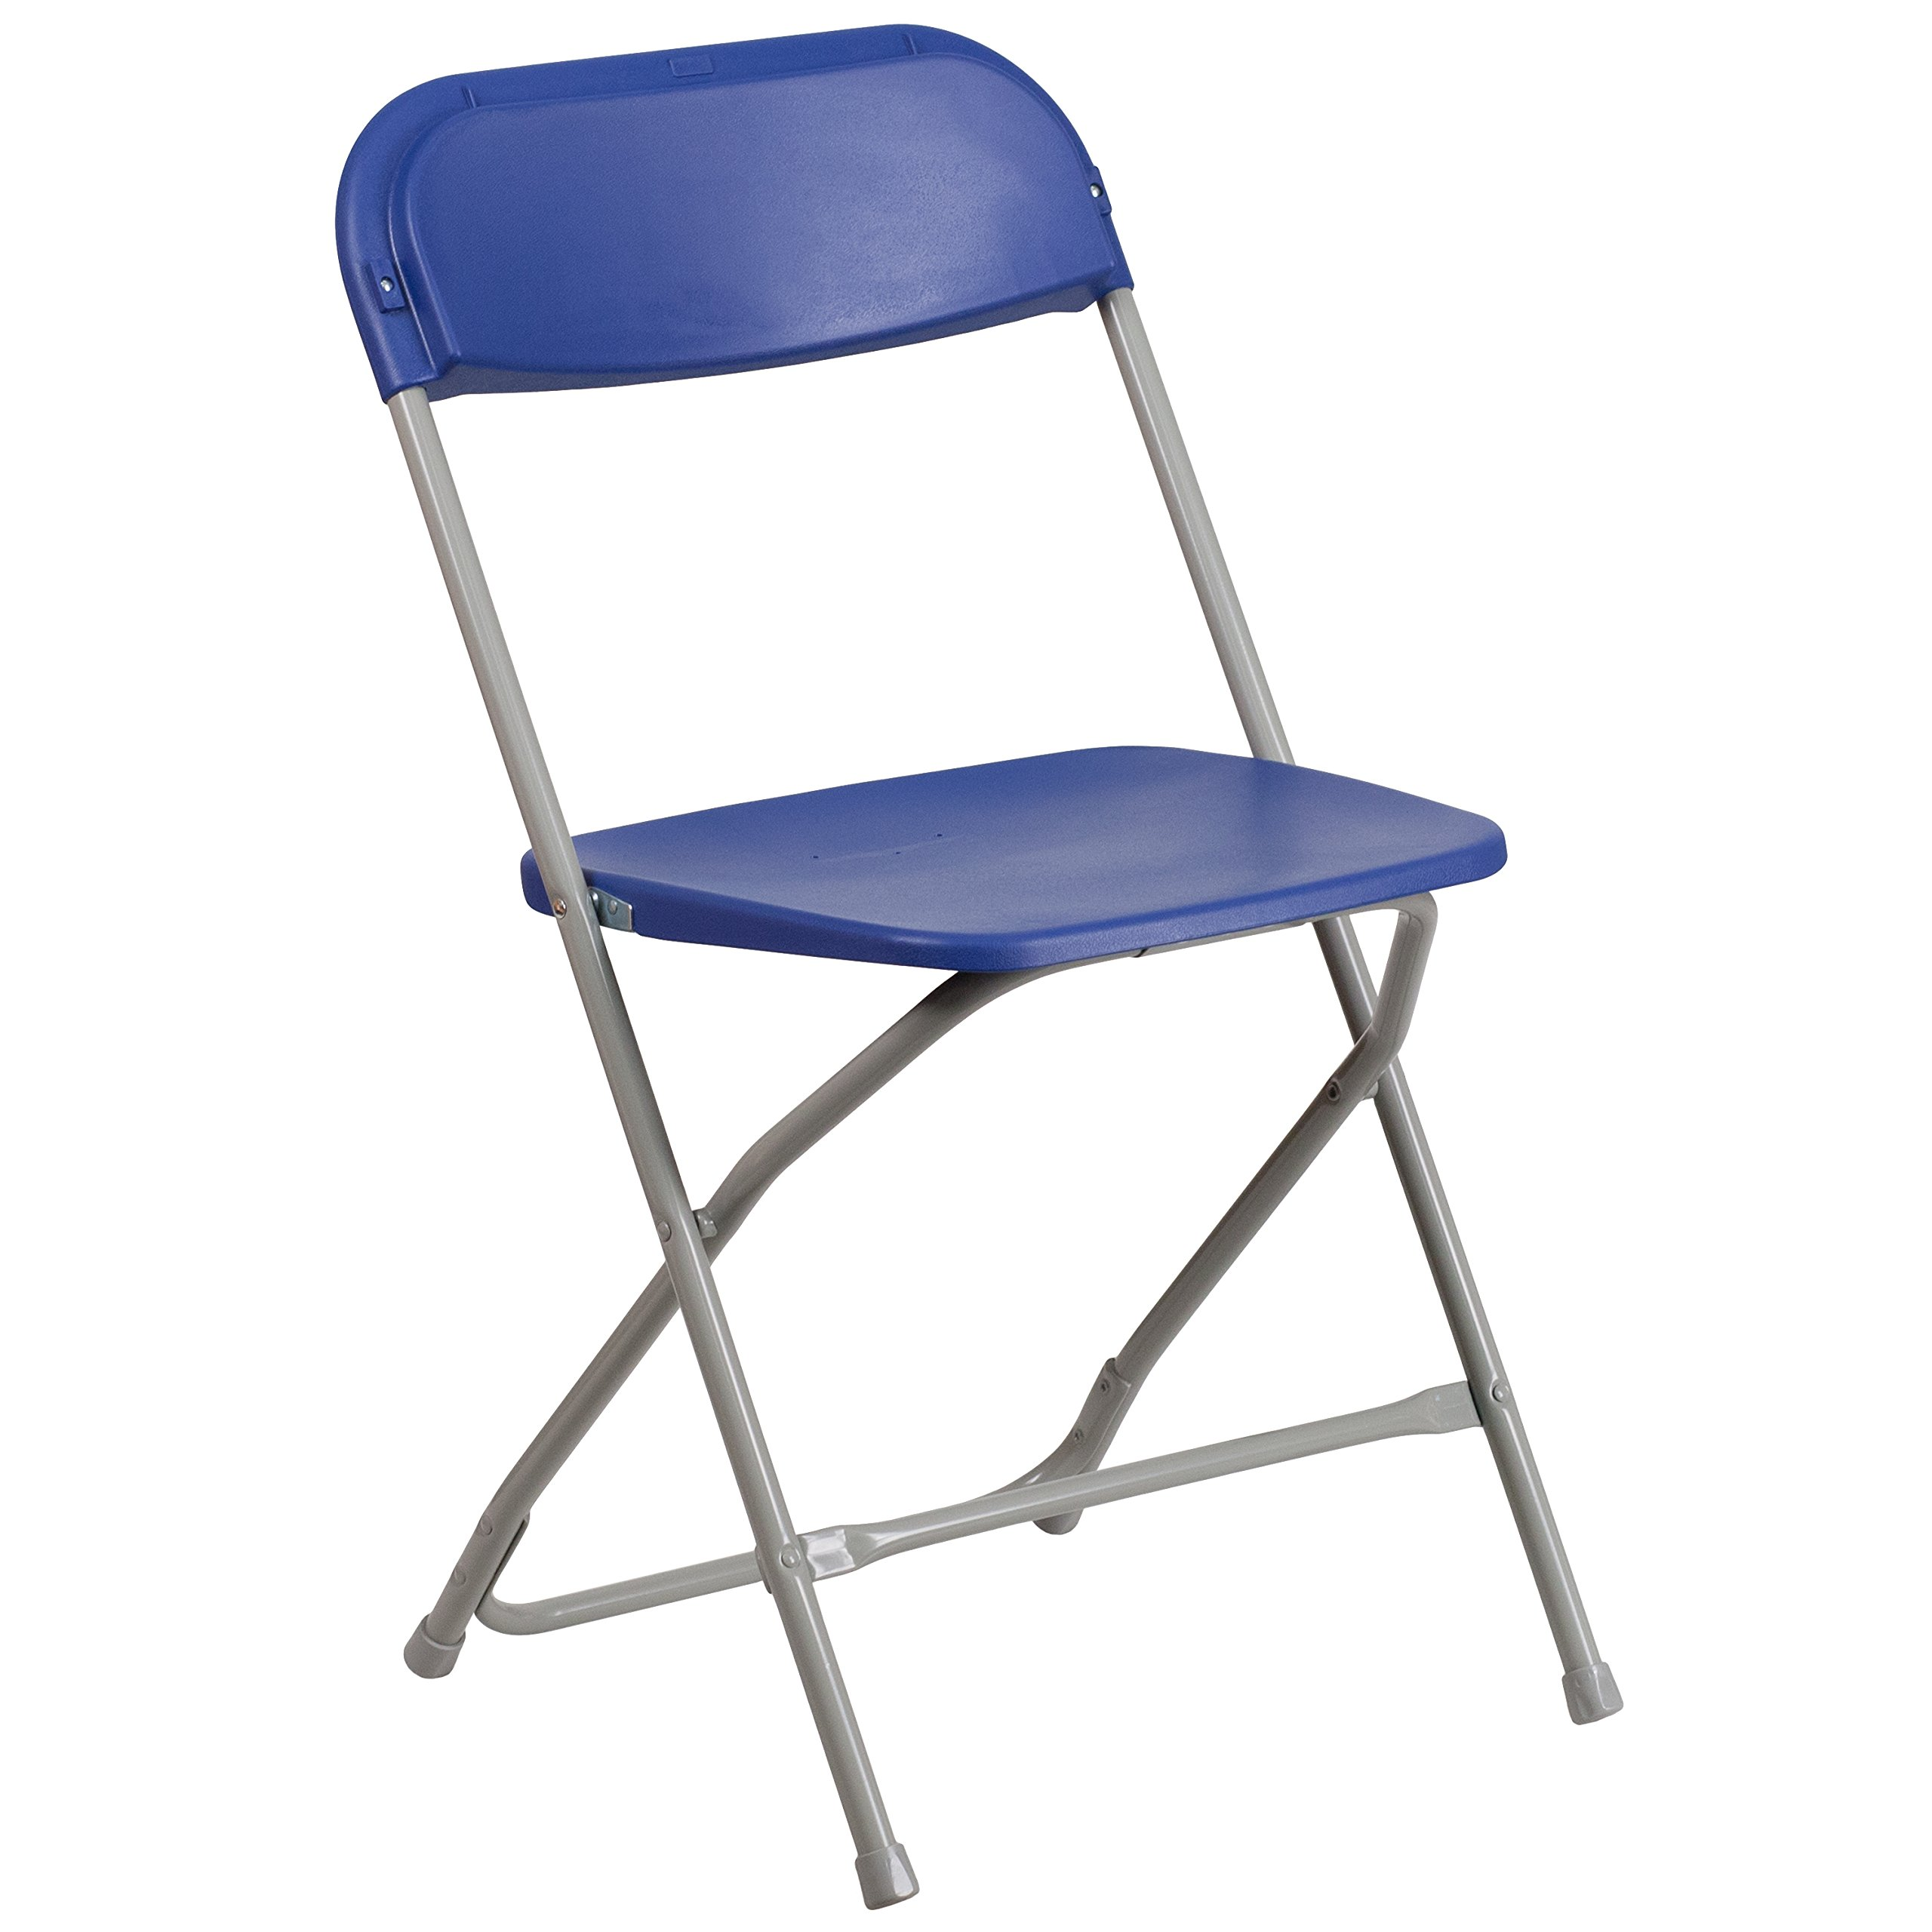 Flash Furniture HERCULES Series 800 lb. Capacity Premium Blue Plastic Folding Chair by Flash Furniture